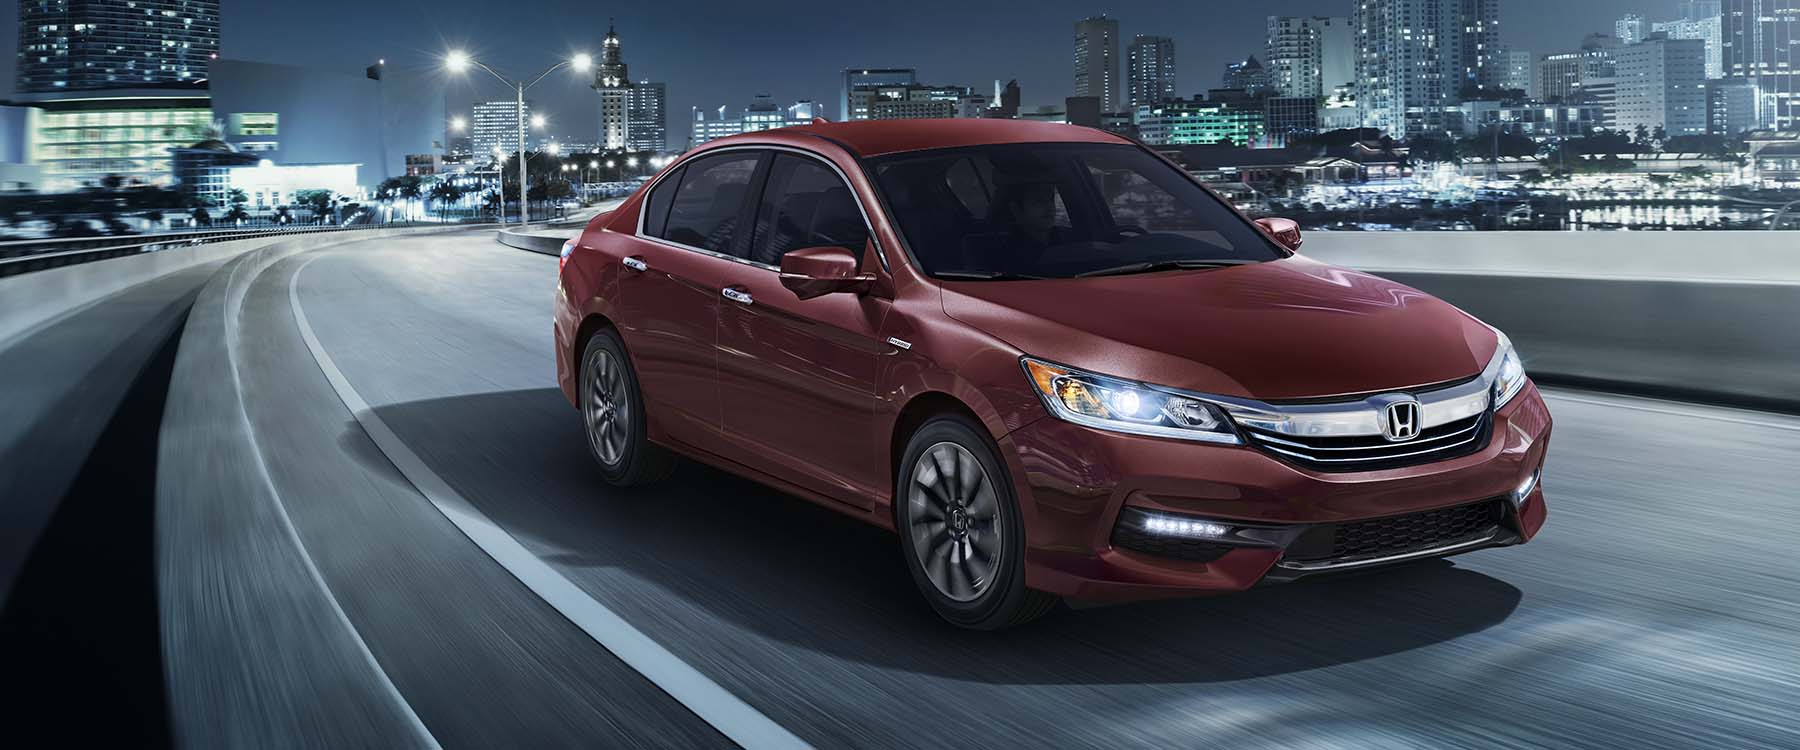 2017 Honda Accord Hybrid Slider